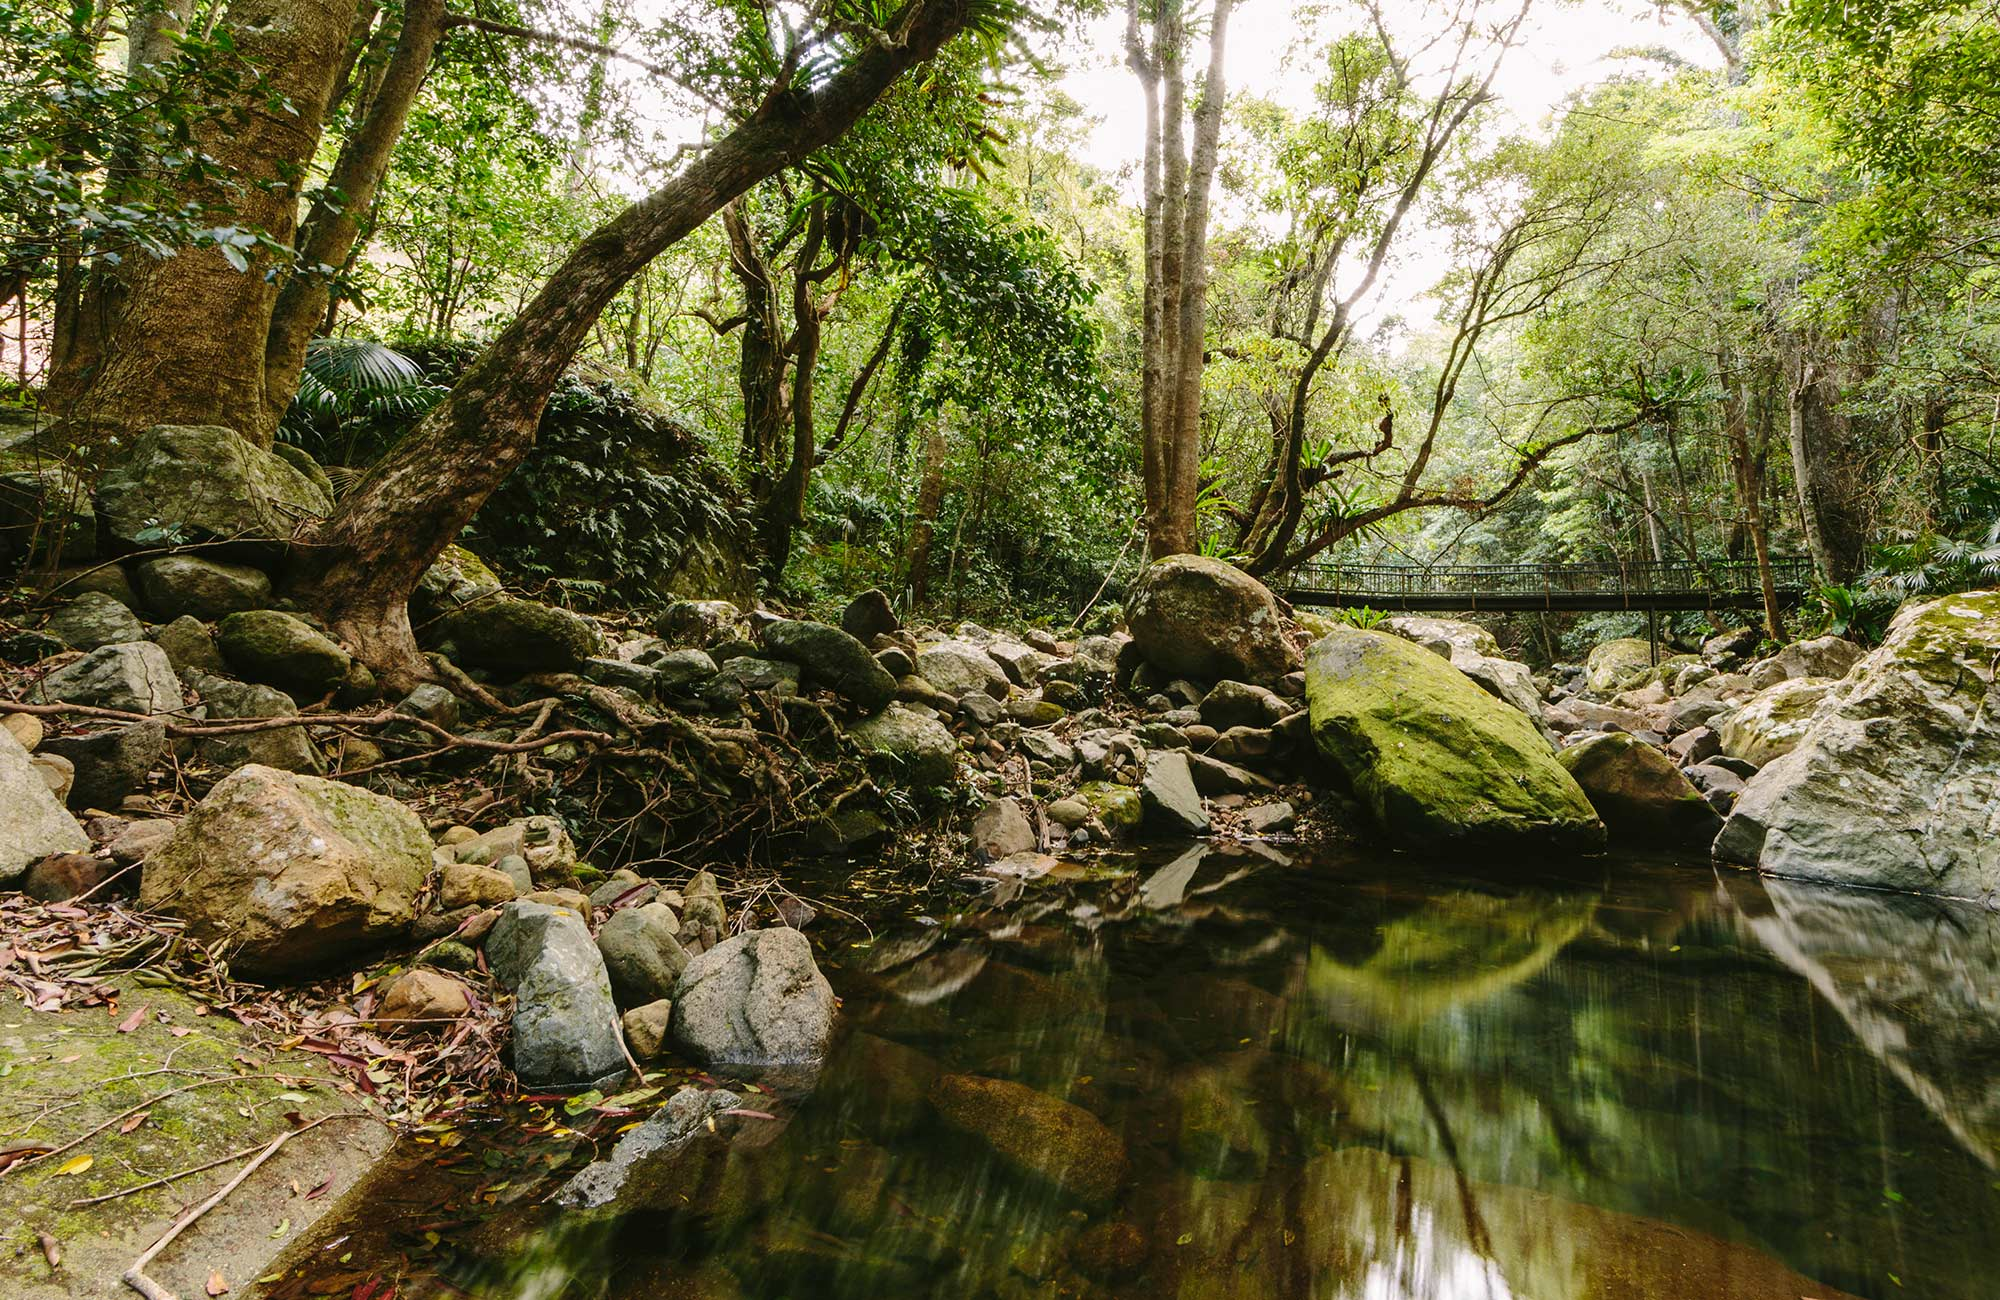 Minnamaurra Rainforest, Budderoo National Park. Photo: David Finnegan